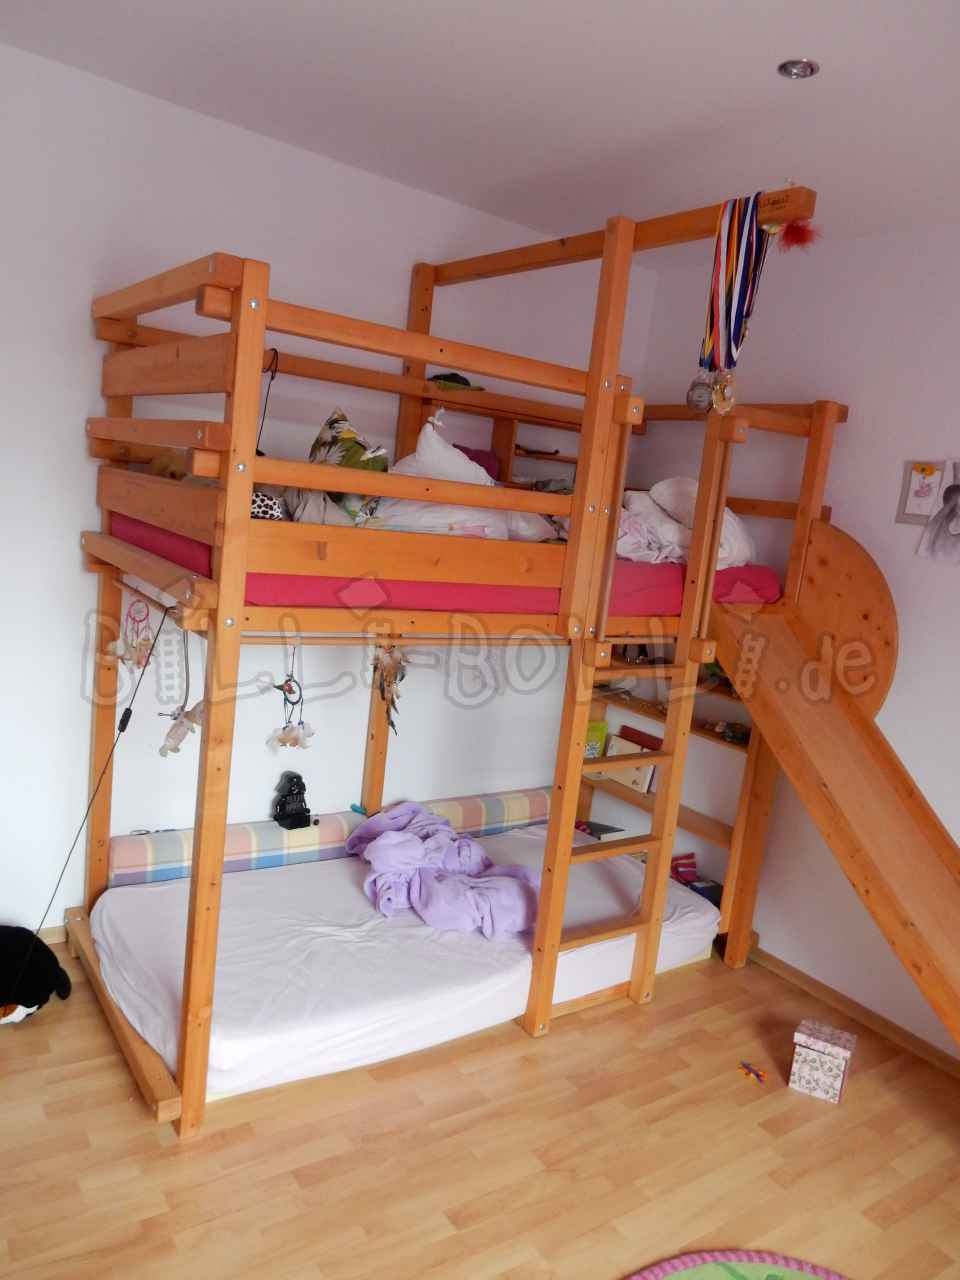 Collumbering high bed, 90 x 200 cm, spruce honey-coloured oiled (second hand loft bed)